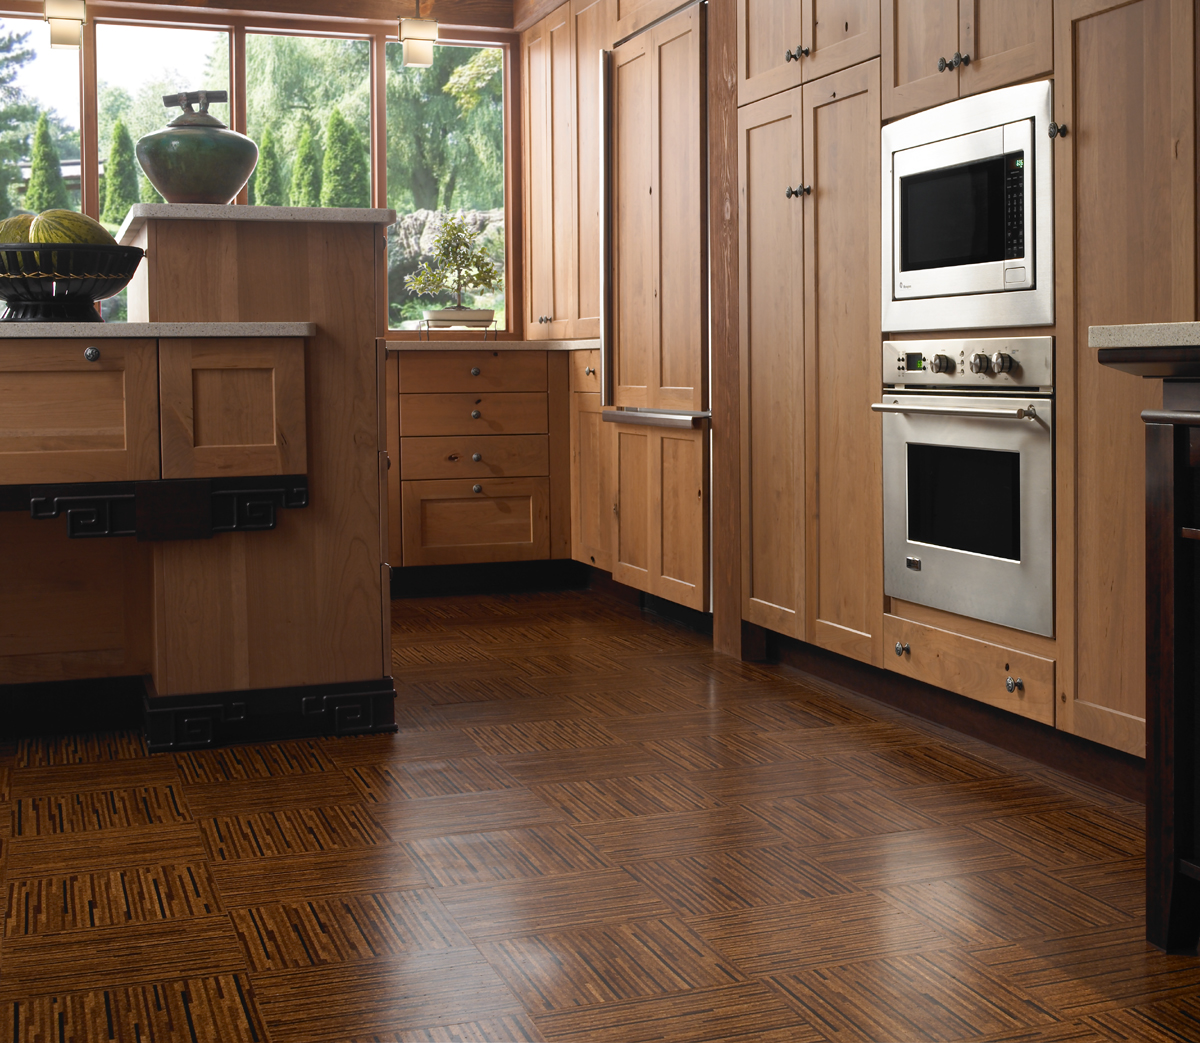 Cork Floors With Lines Prints Solid Kitchen Cabinetry Electric Kitchen  Appliance Ceramic Vase Ornament Fruits Container